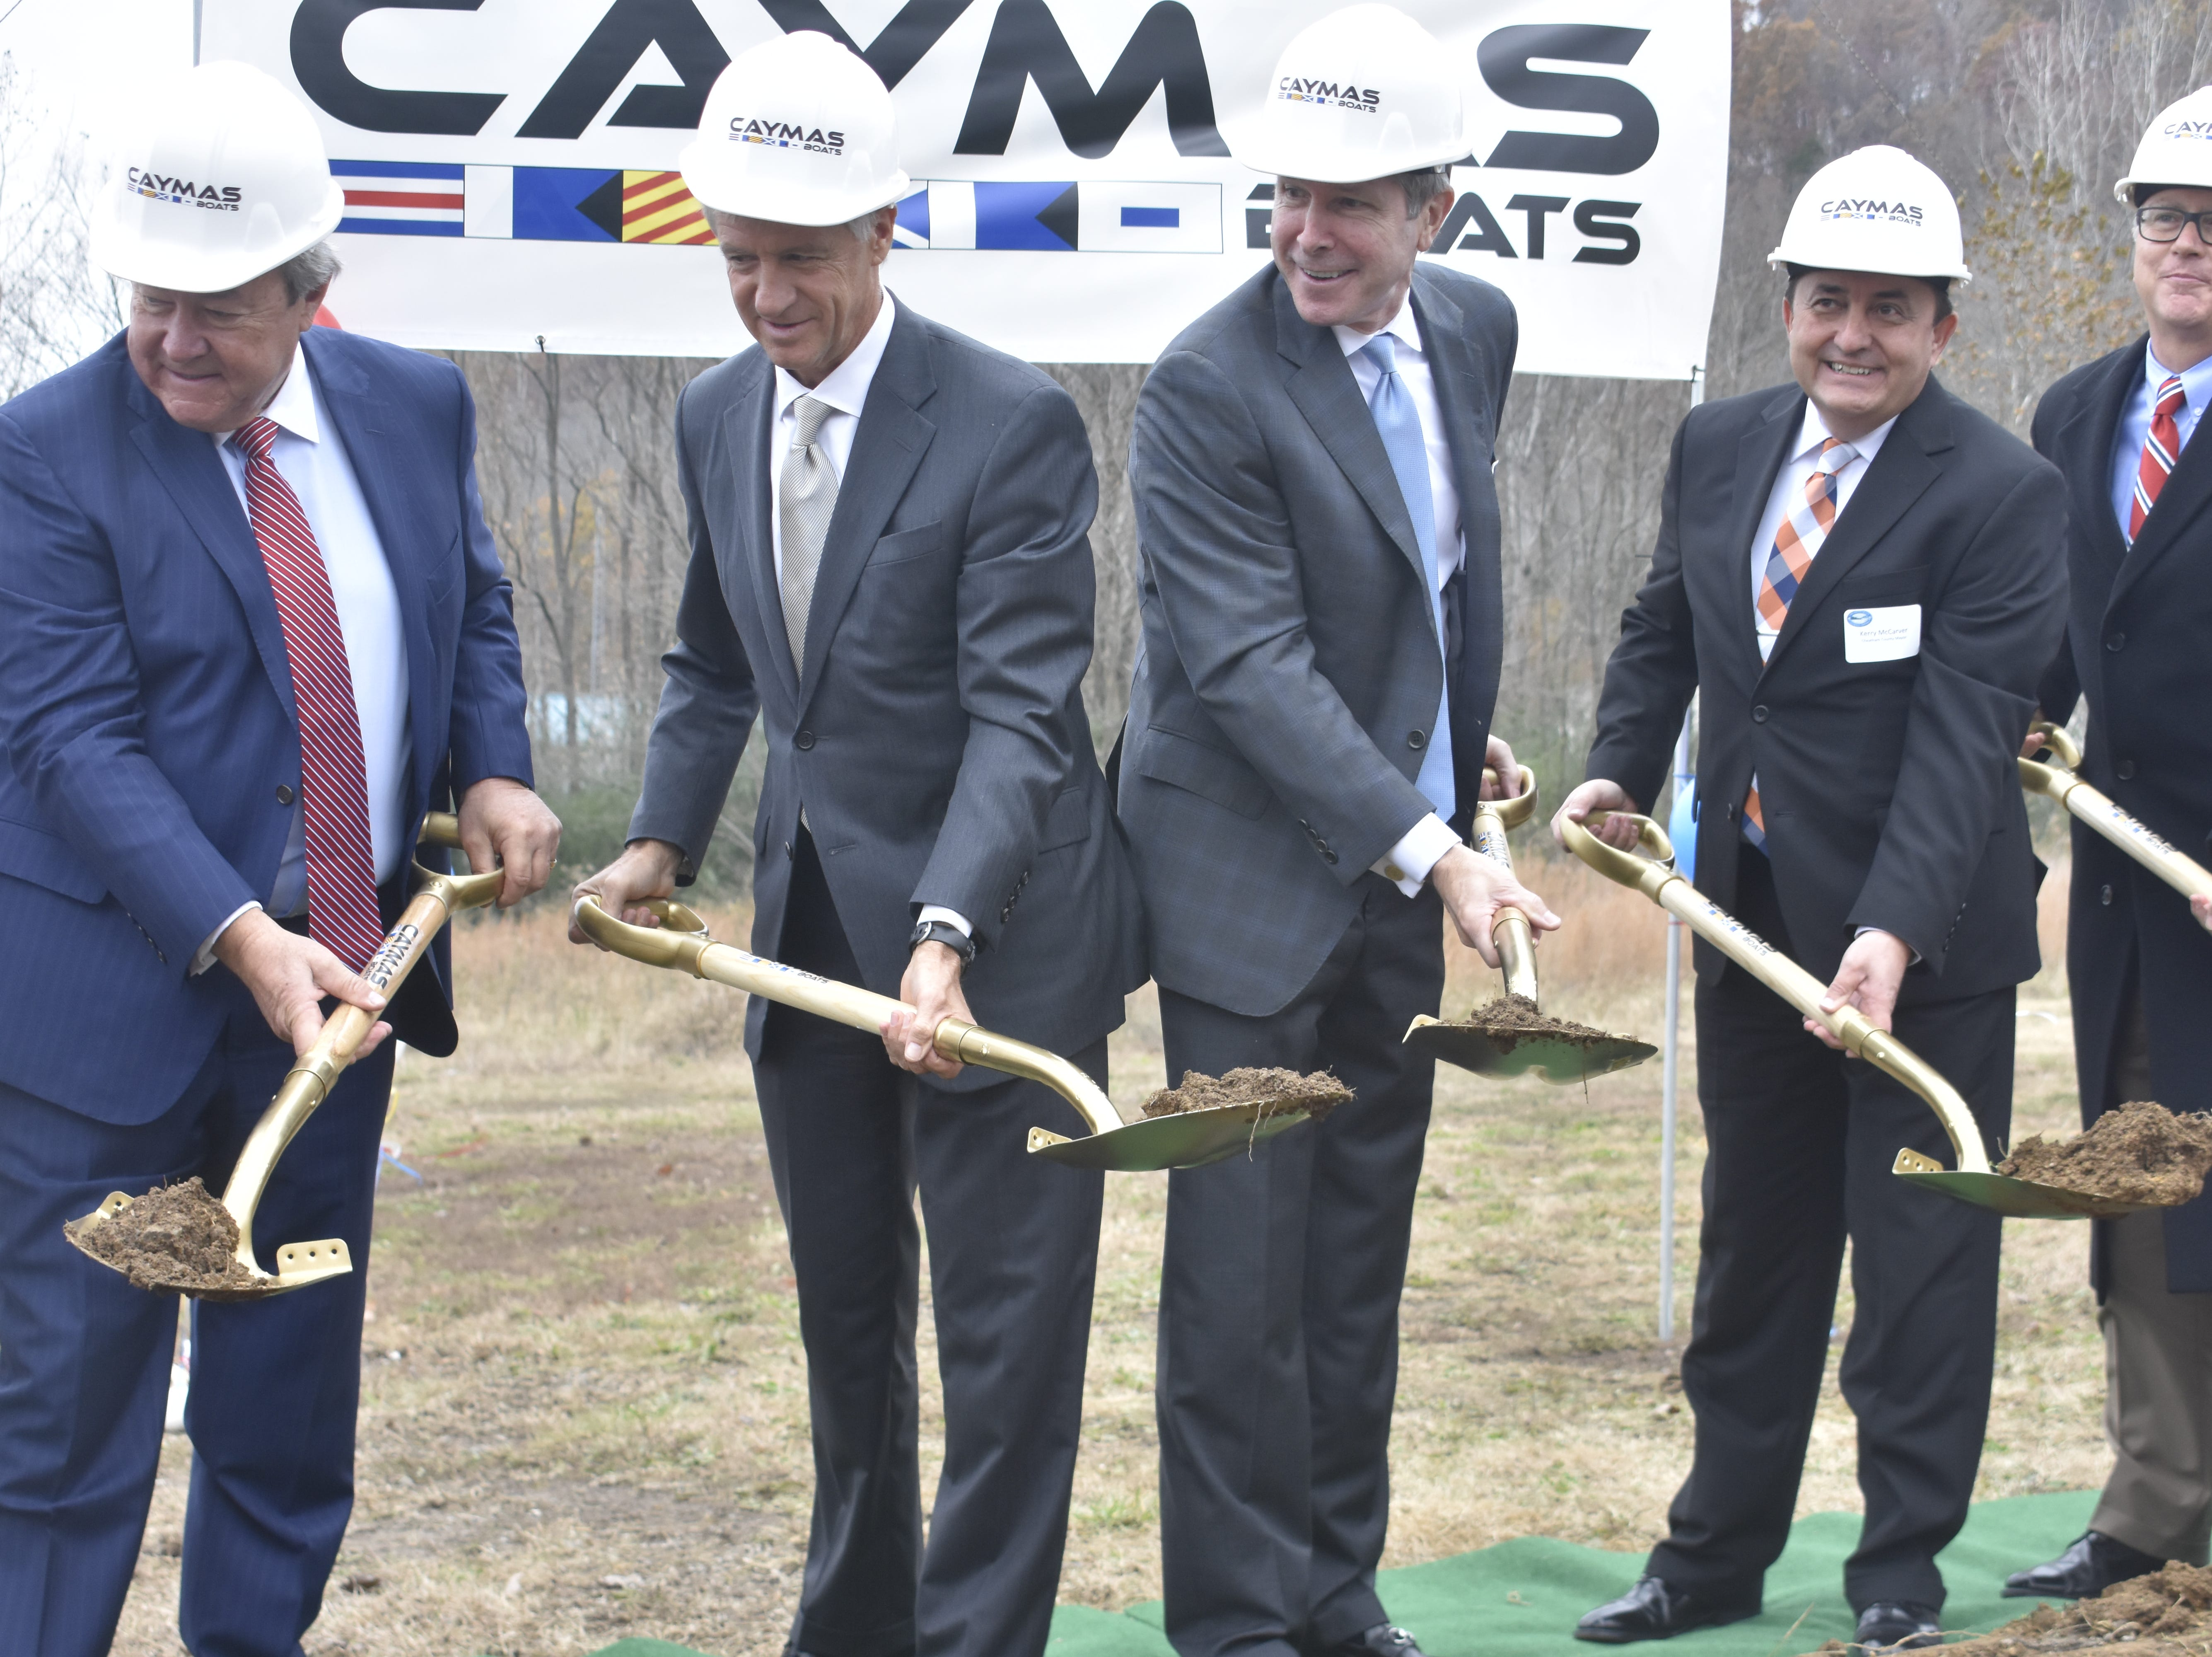 Officials toss dirt at the groundbreaking for Caymas Boats on Monday, Nov. 19 in Ashland City.